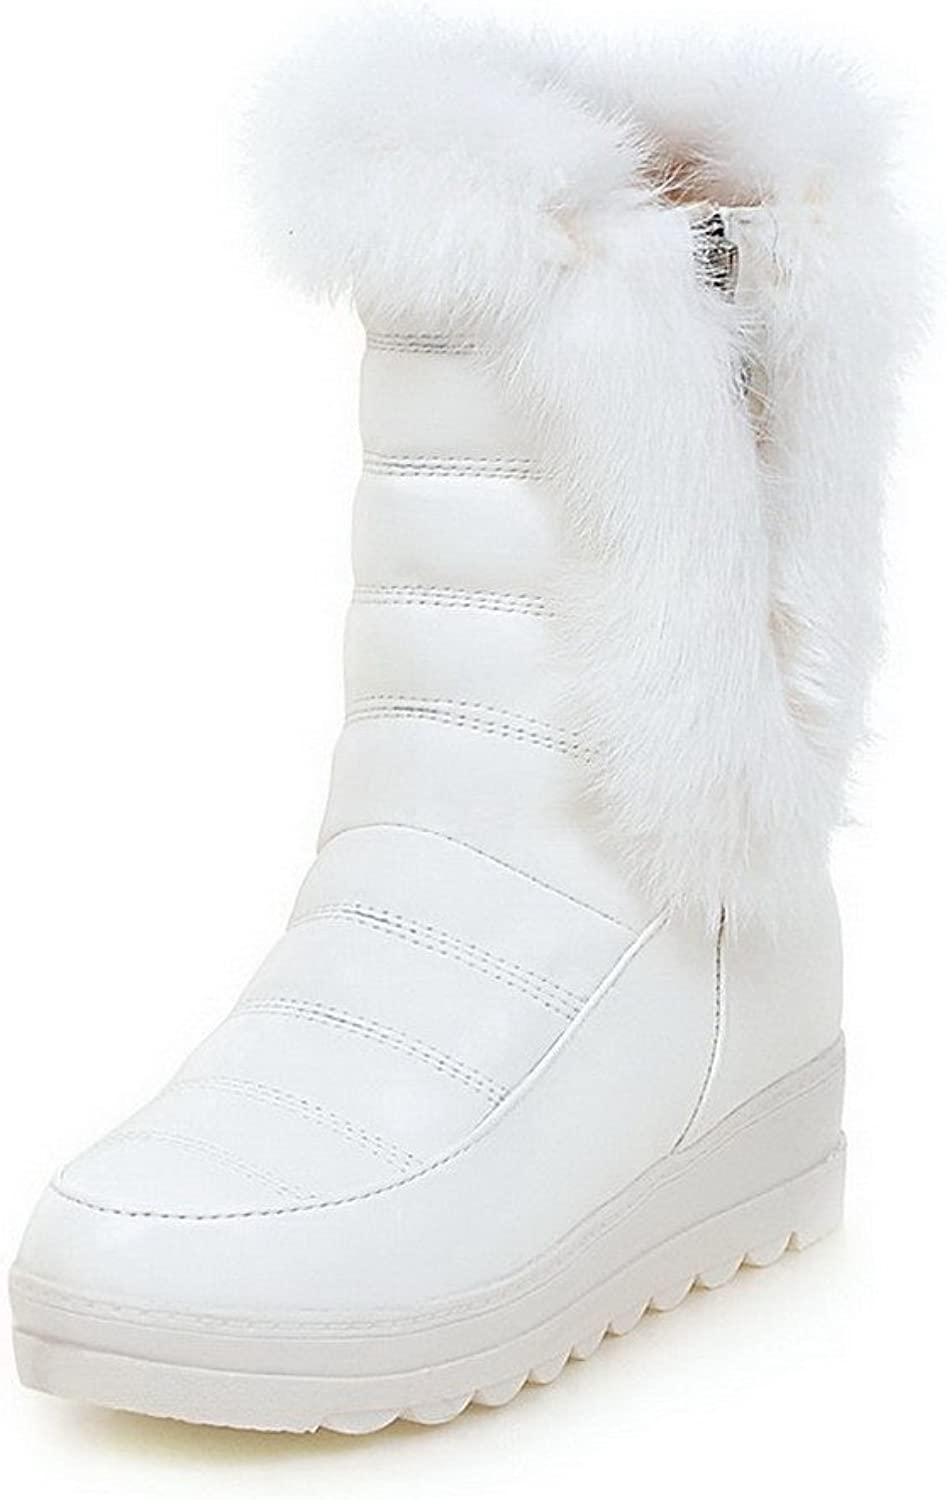 WeiPoot Women's Round Closed Toe Low-top Kitten-Heels Solid PU Boots